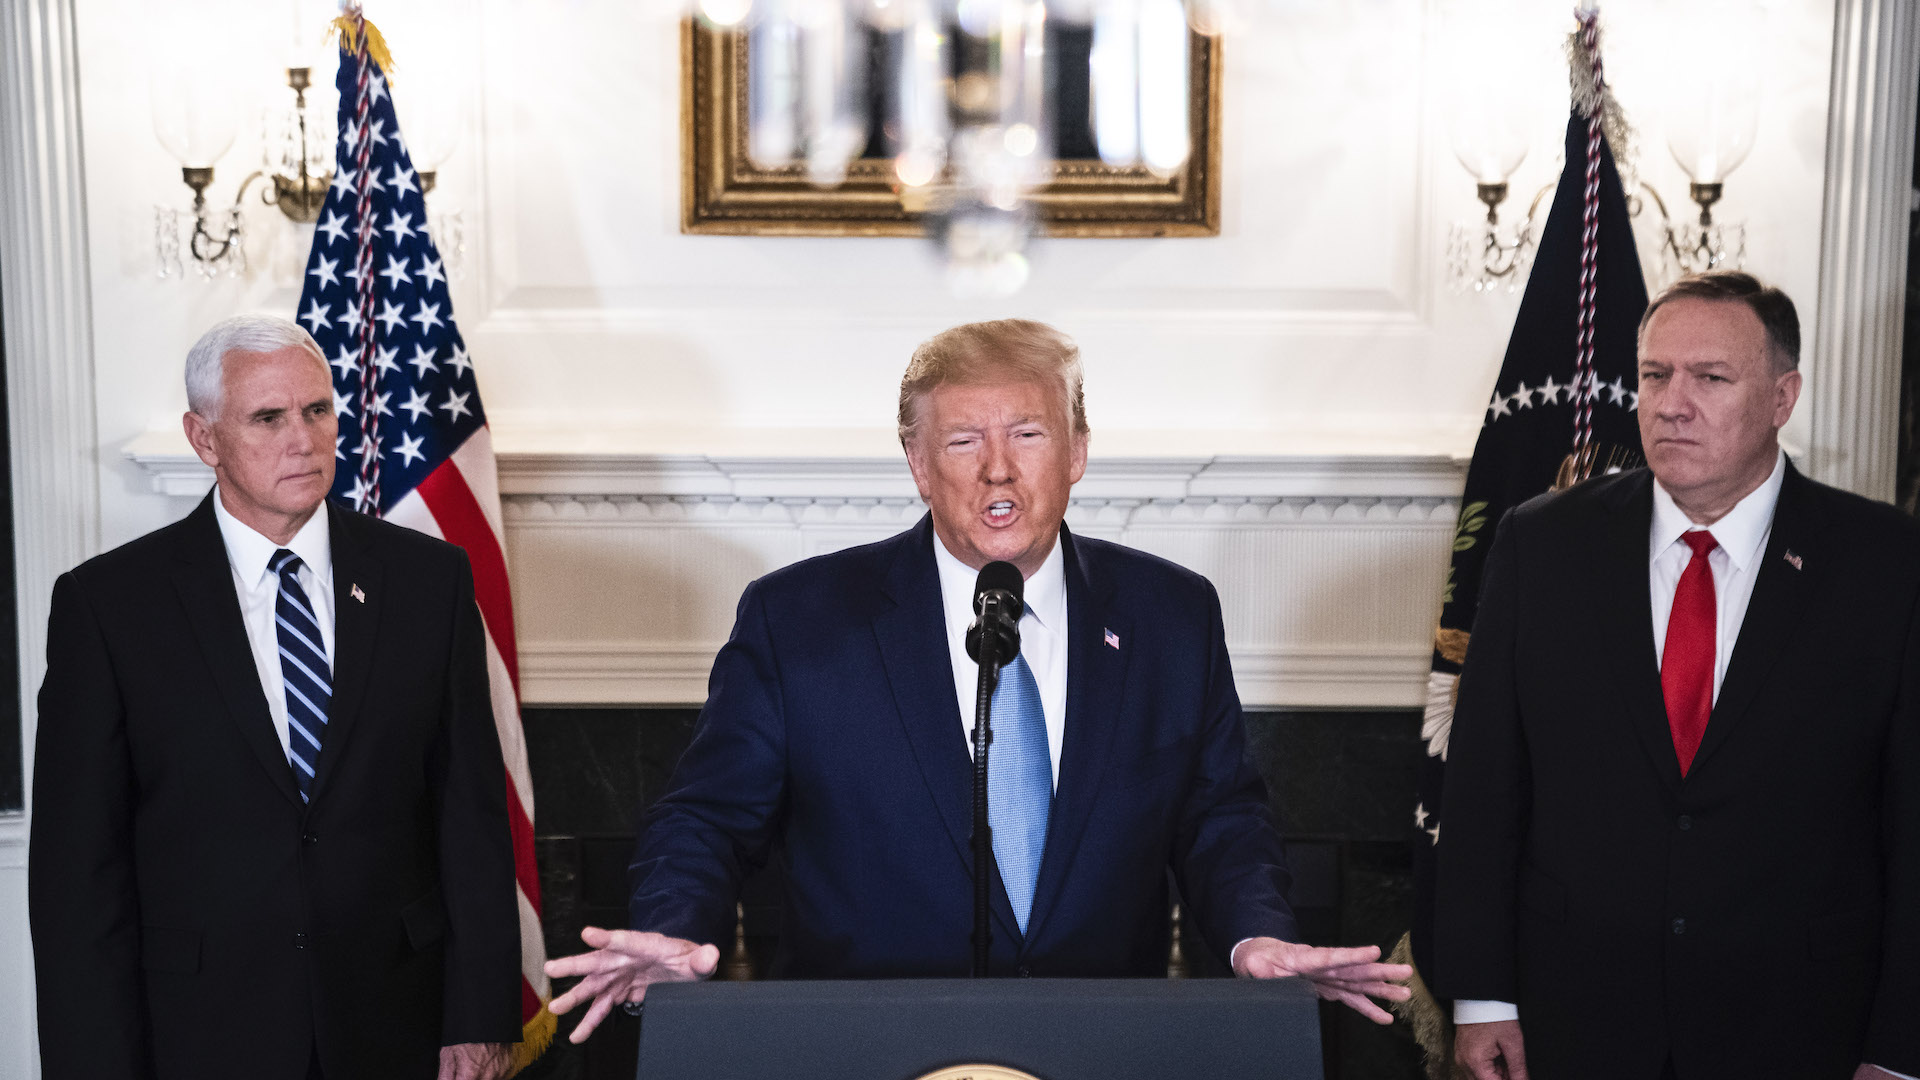 Trump says U.S. will lift sanctions on Turkey, calling cease-fire in Syria 'permanent'